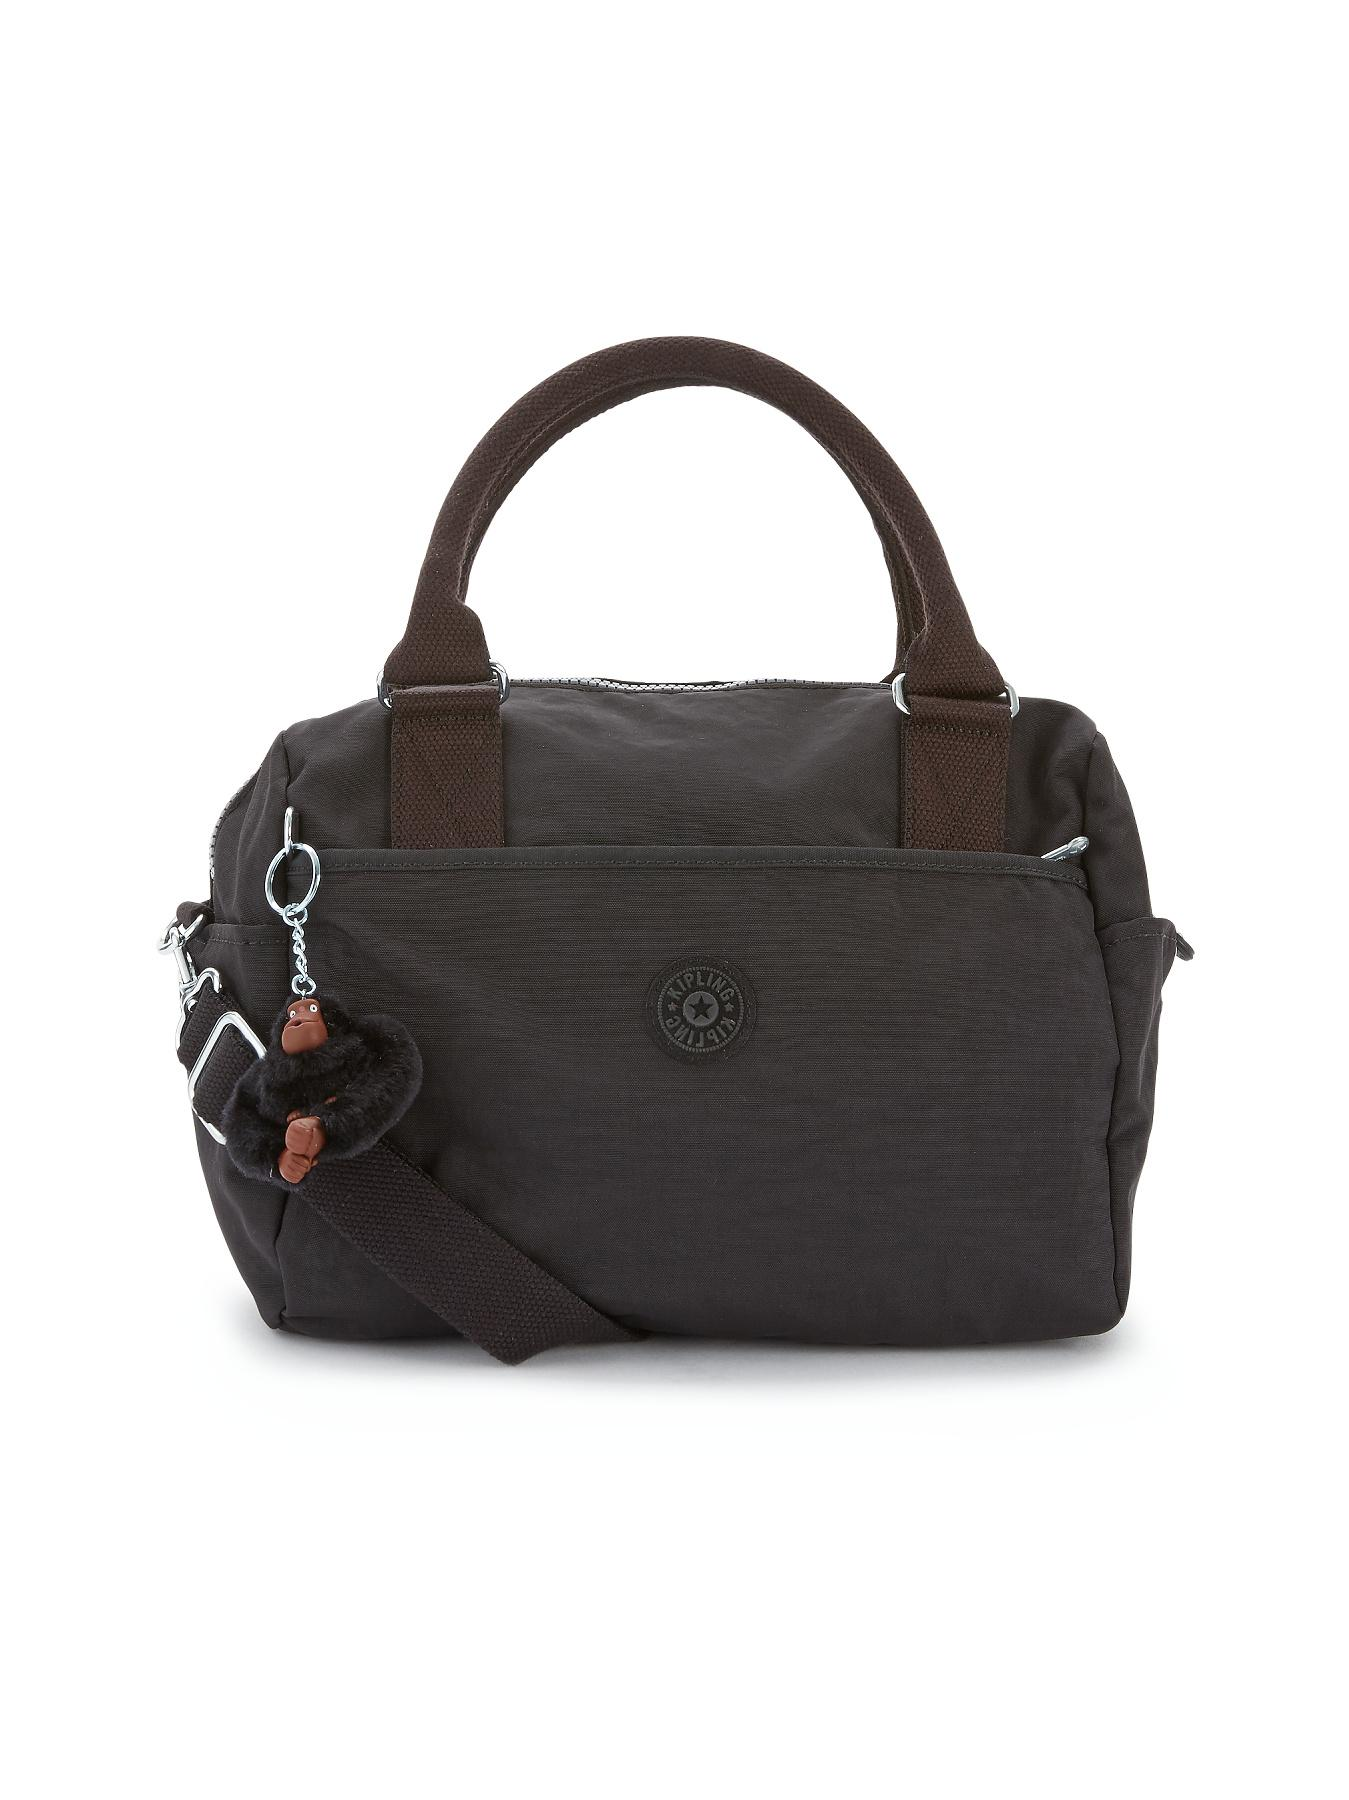 Kipling Beonica Shoulder Bag, Black